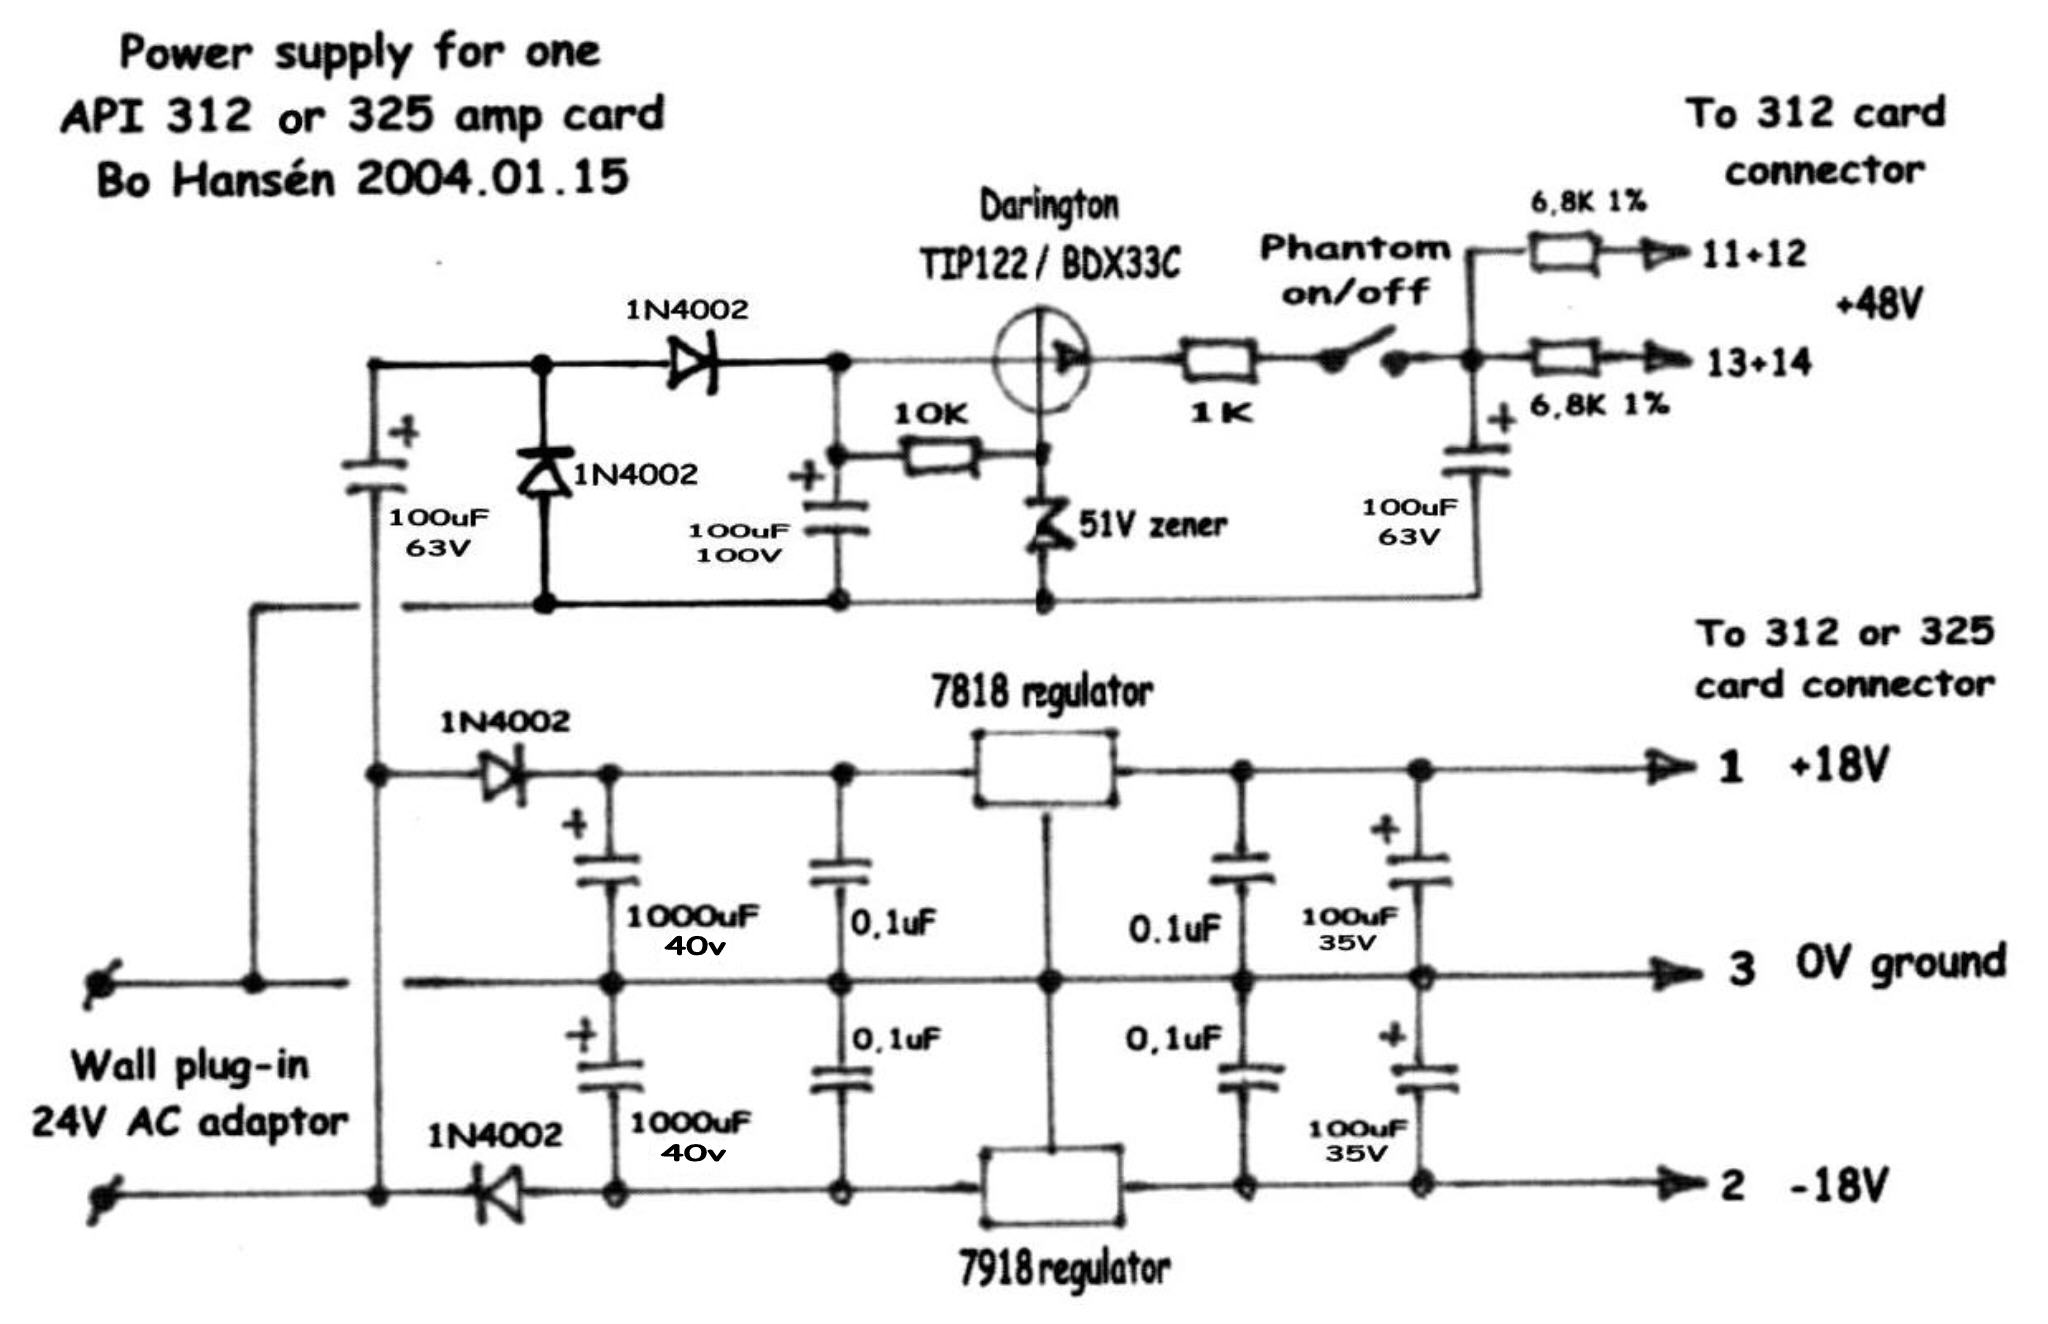 hansén audio gothenburg schematic api psu jpg 192768 byte